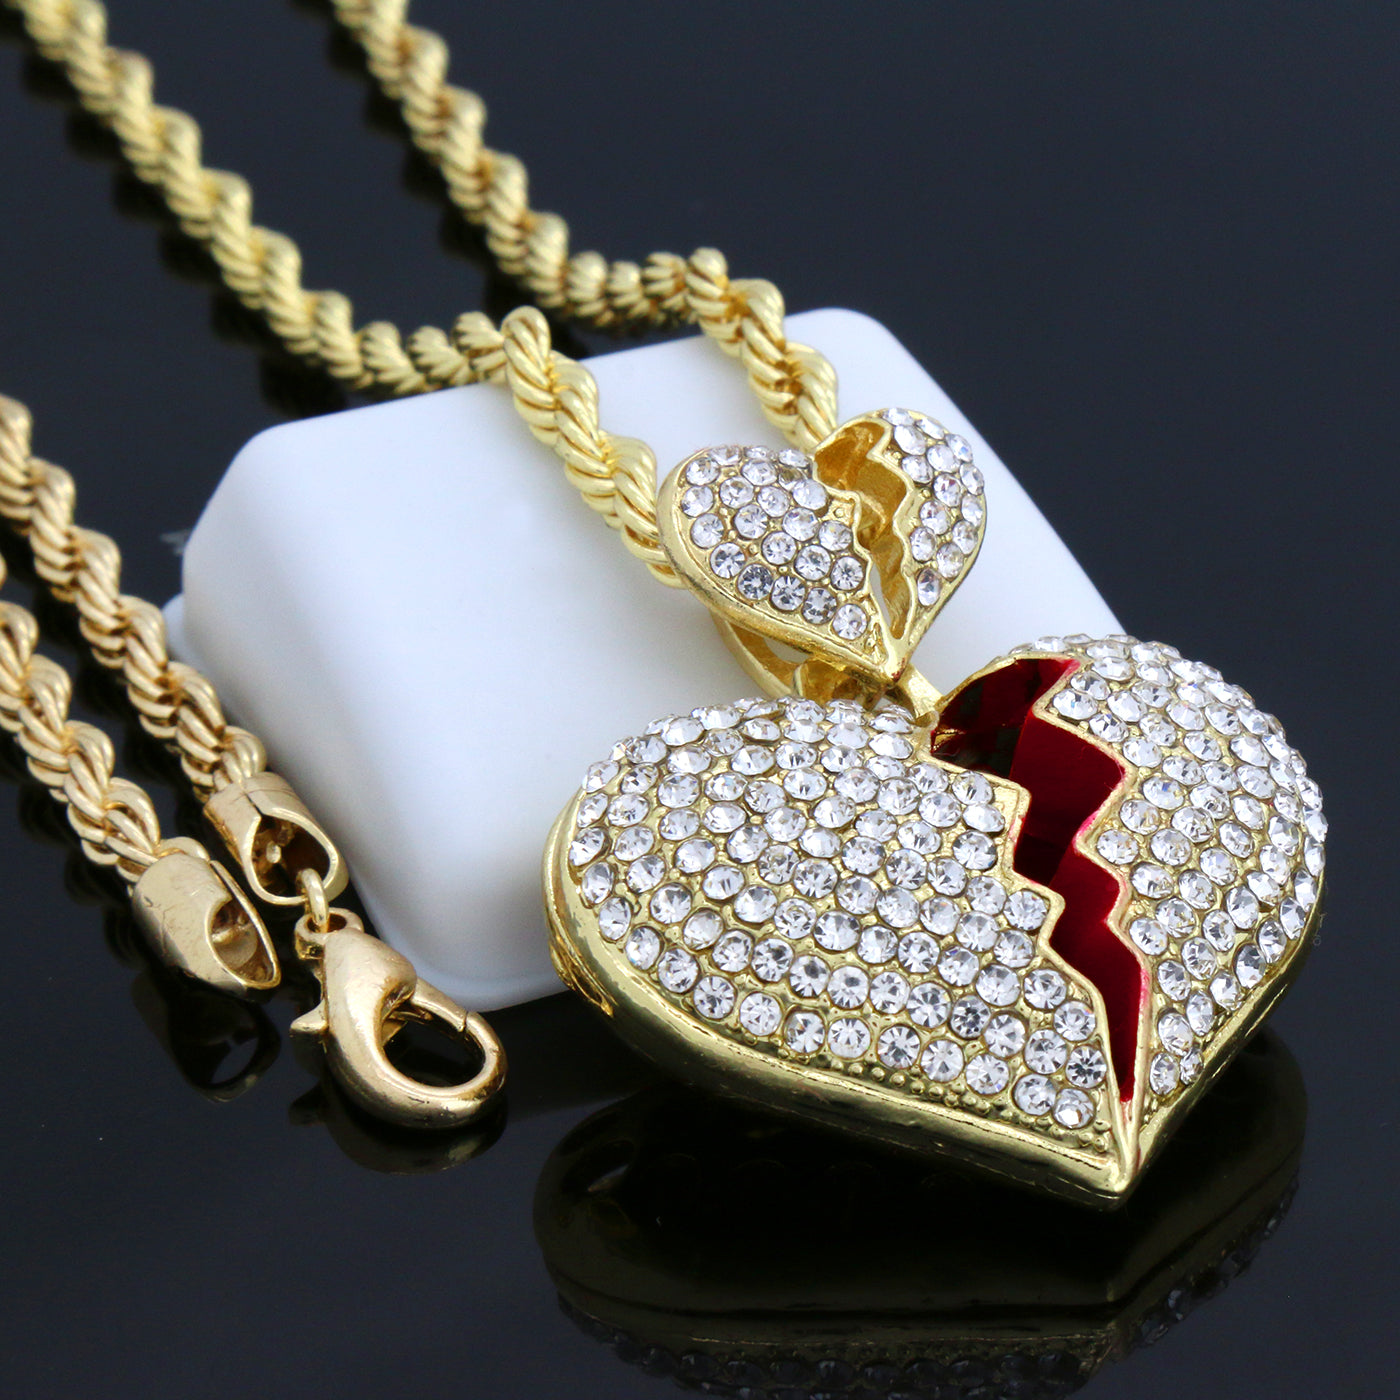 GOLD DOUBLE MONEY BAG ICE OUT